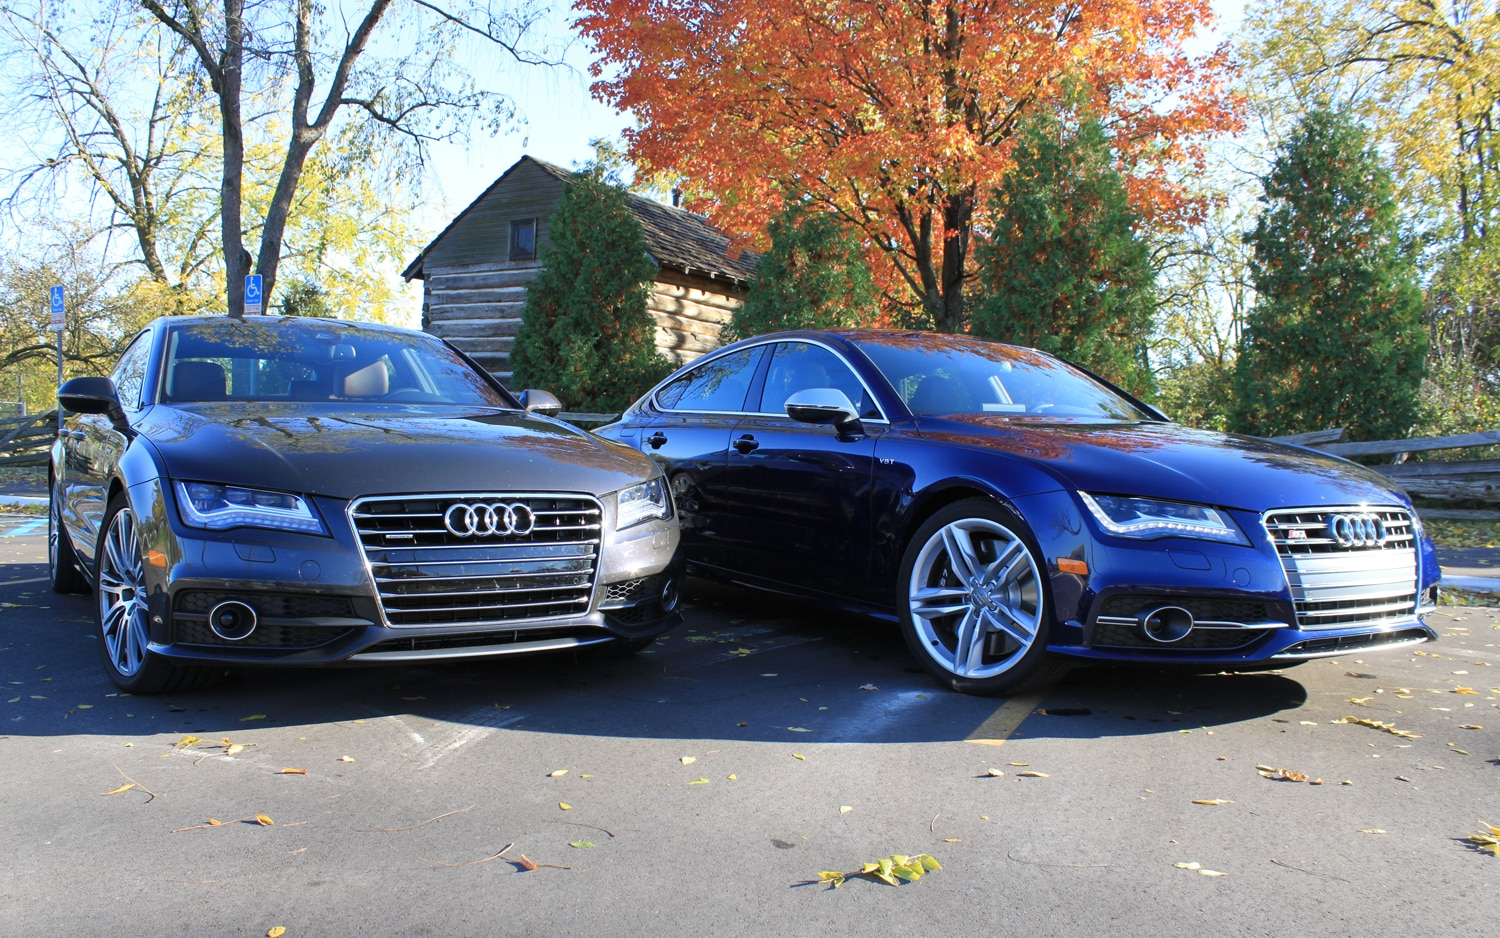 2012 audi a7 four seasons update november 2012 automobile magazine. Black Bedroom Furniture Sets. Home Design Ideas